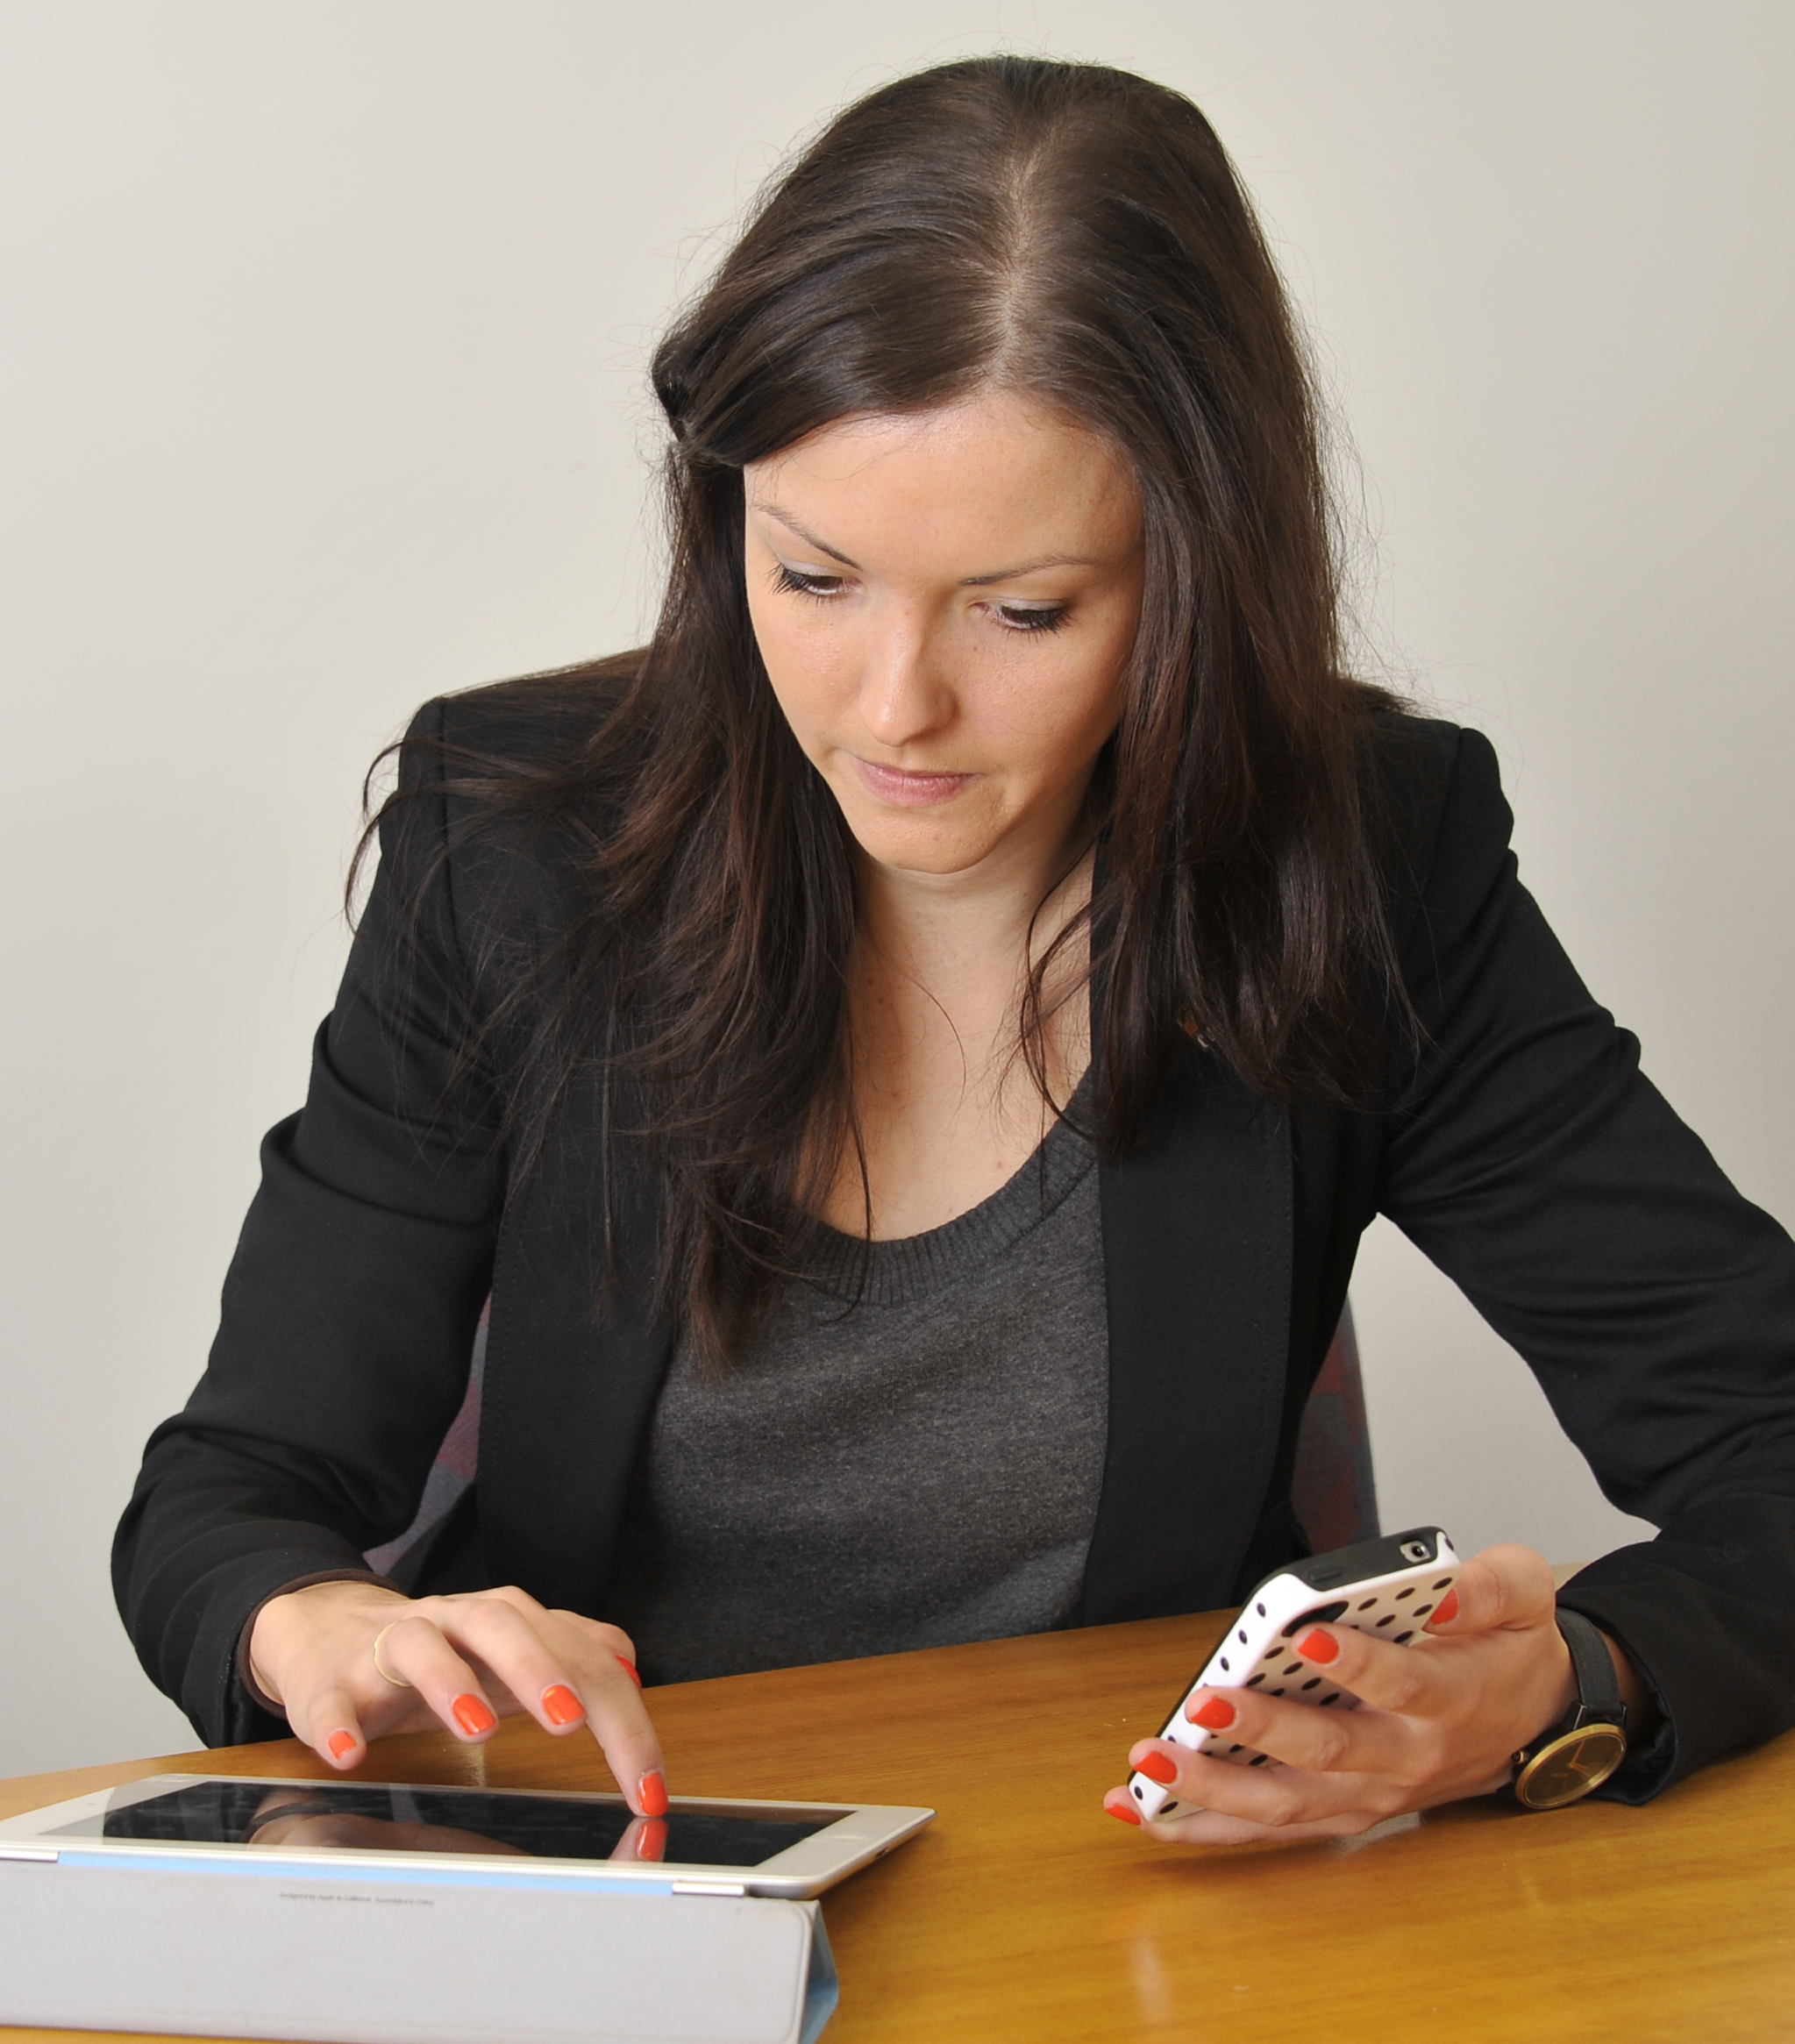 Woman sitting at desk using a tablet and smartphone